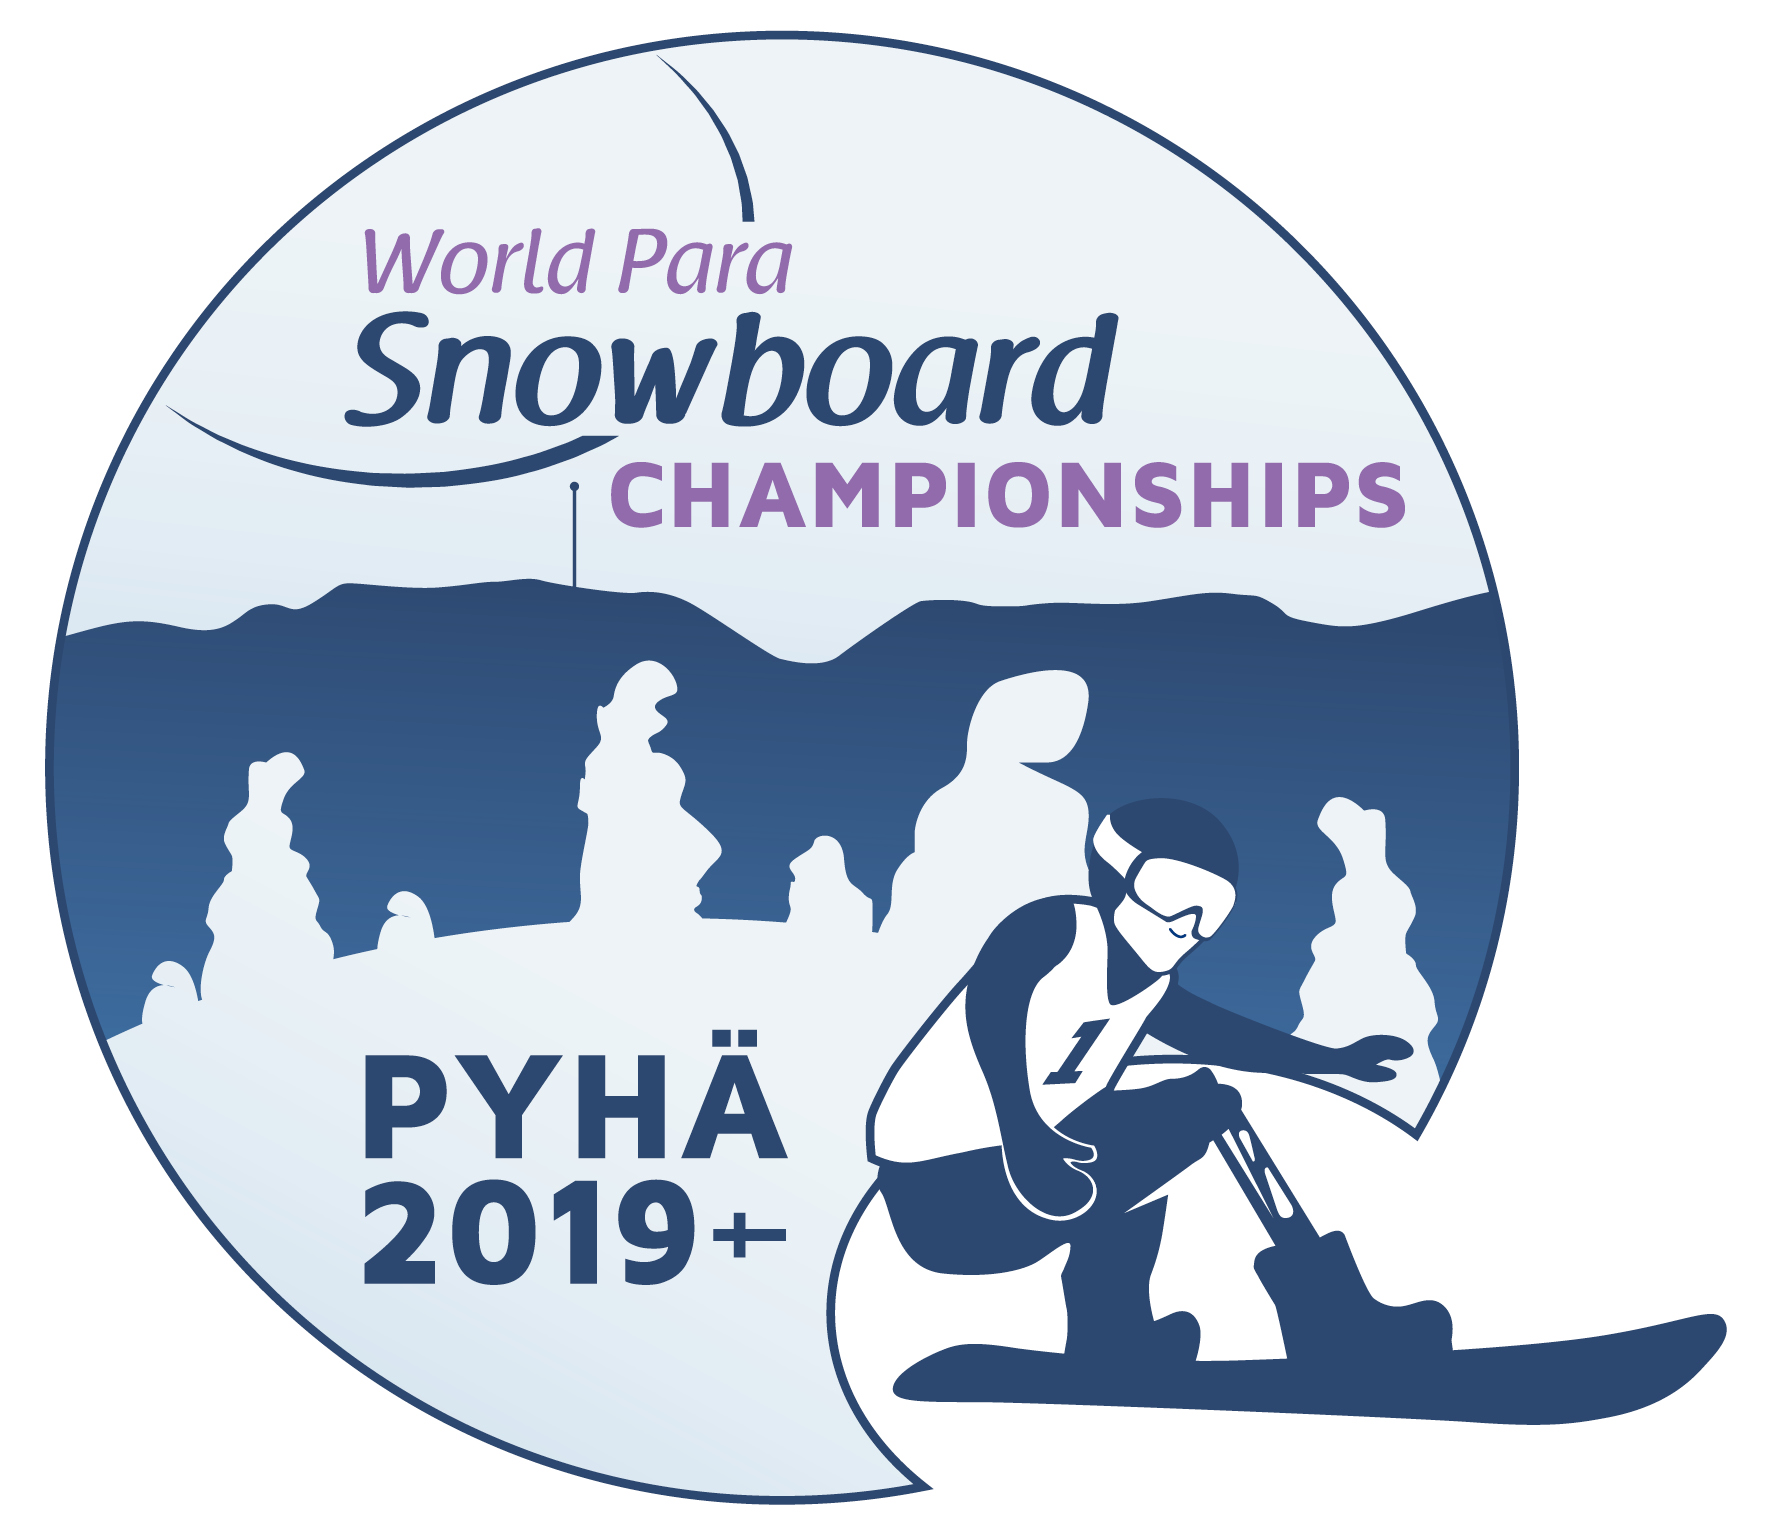 the official logo of the Pyha 2019 World Para Snowboard Championships